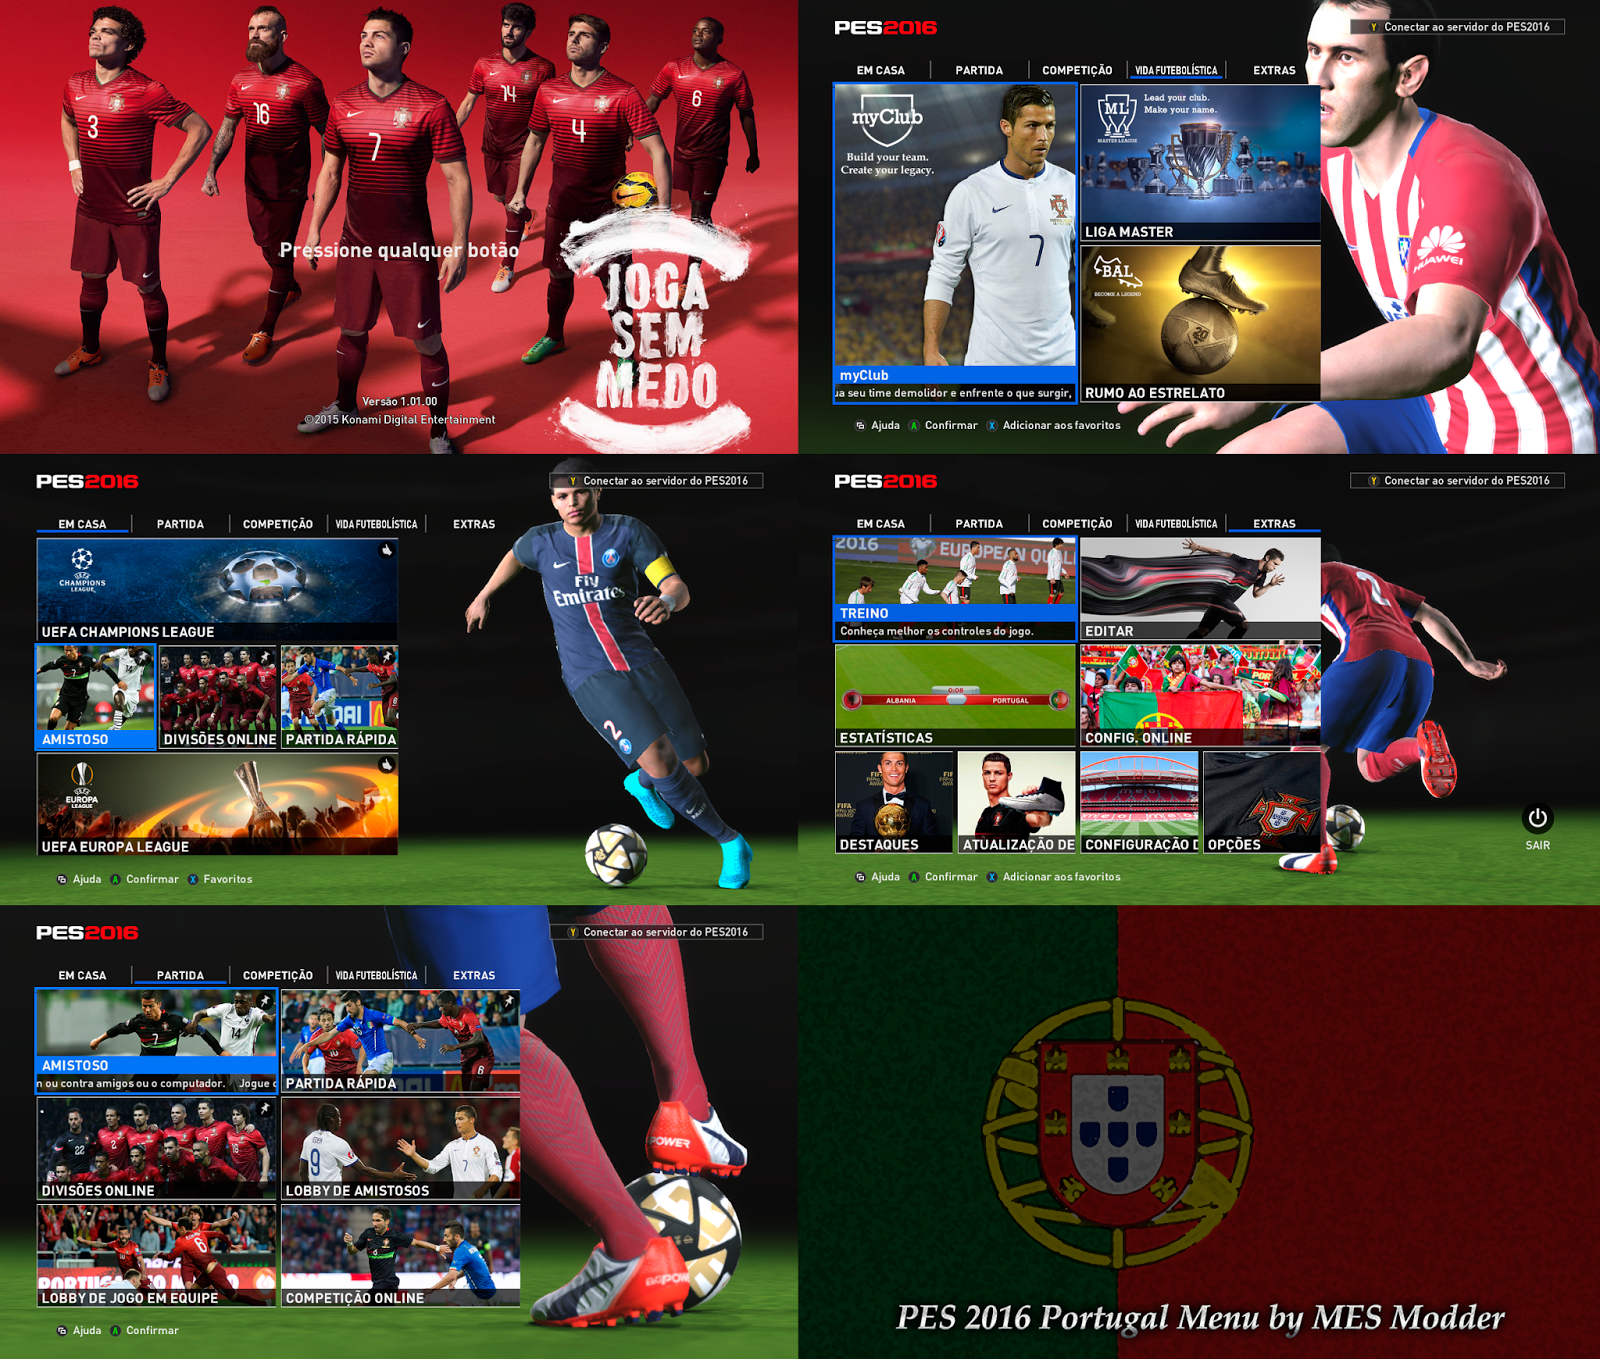 [PES 2016] Portugal Menu by MES Modder PREVIEW